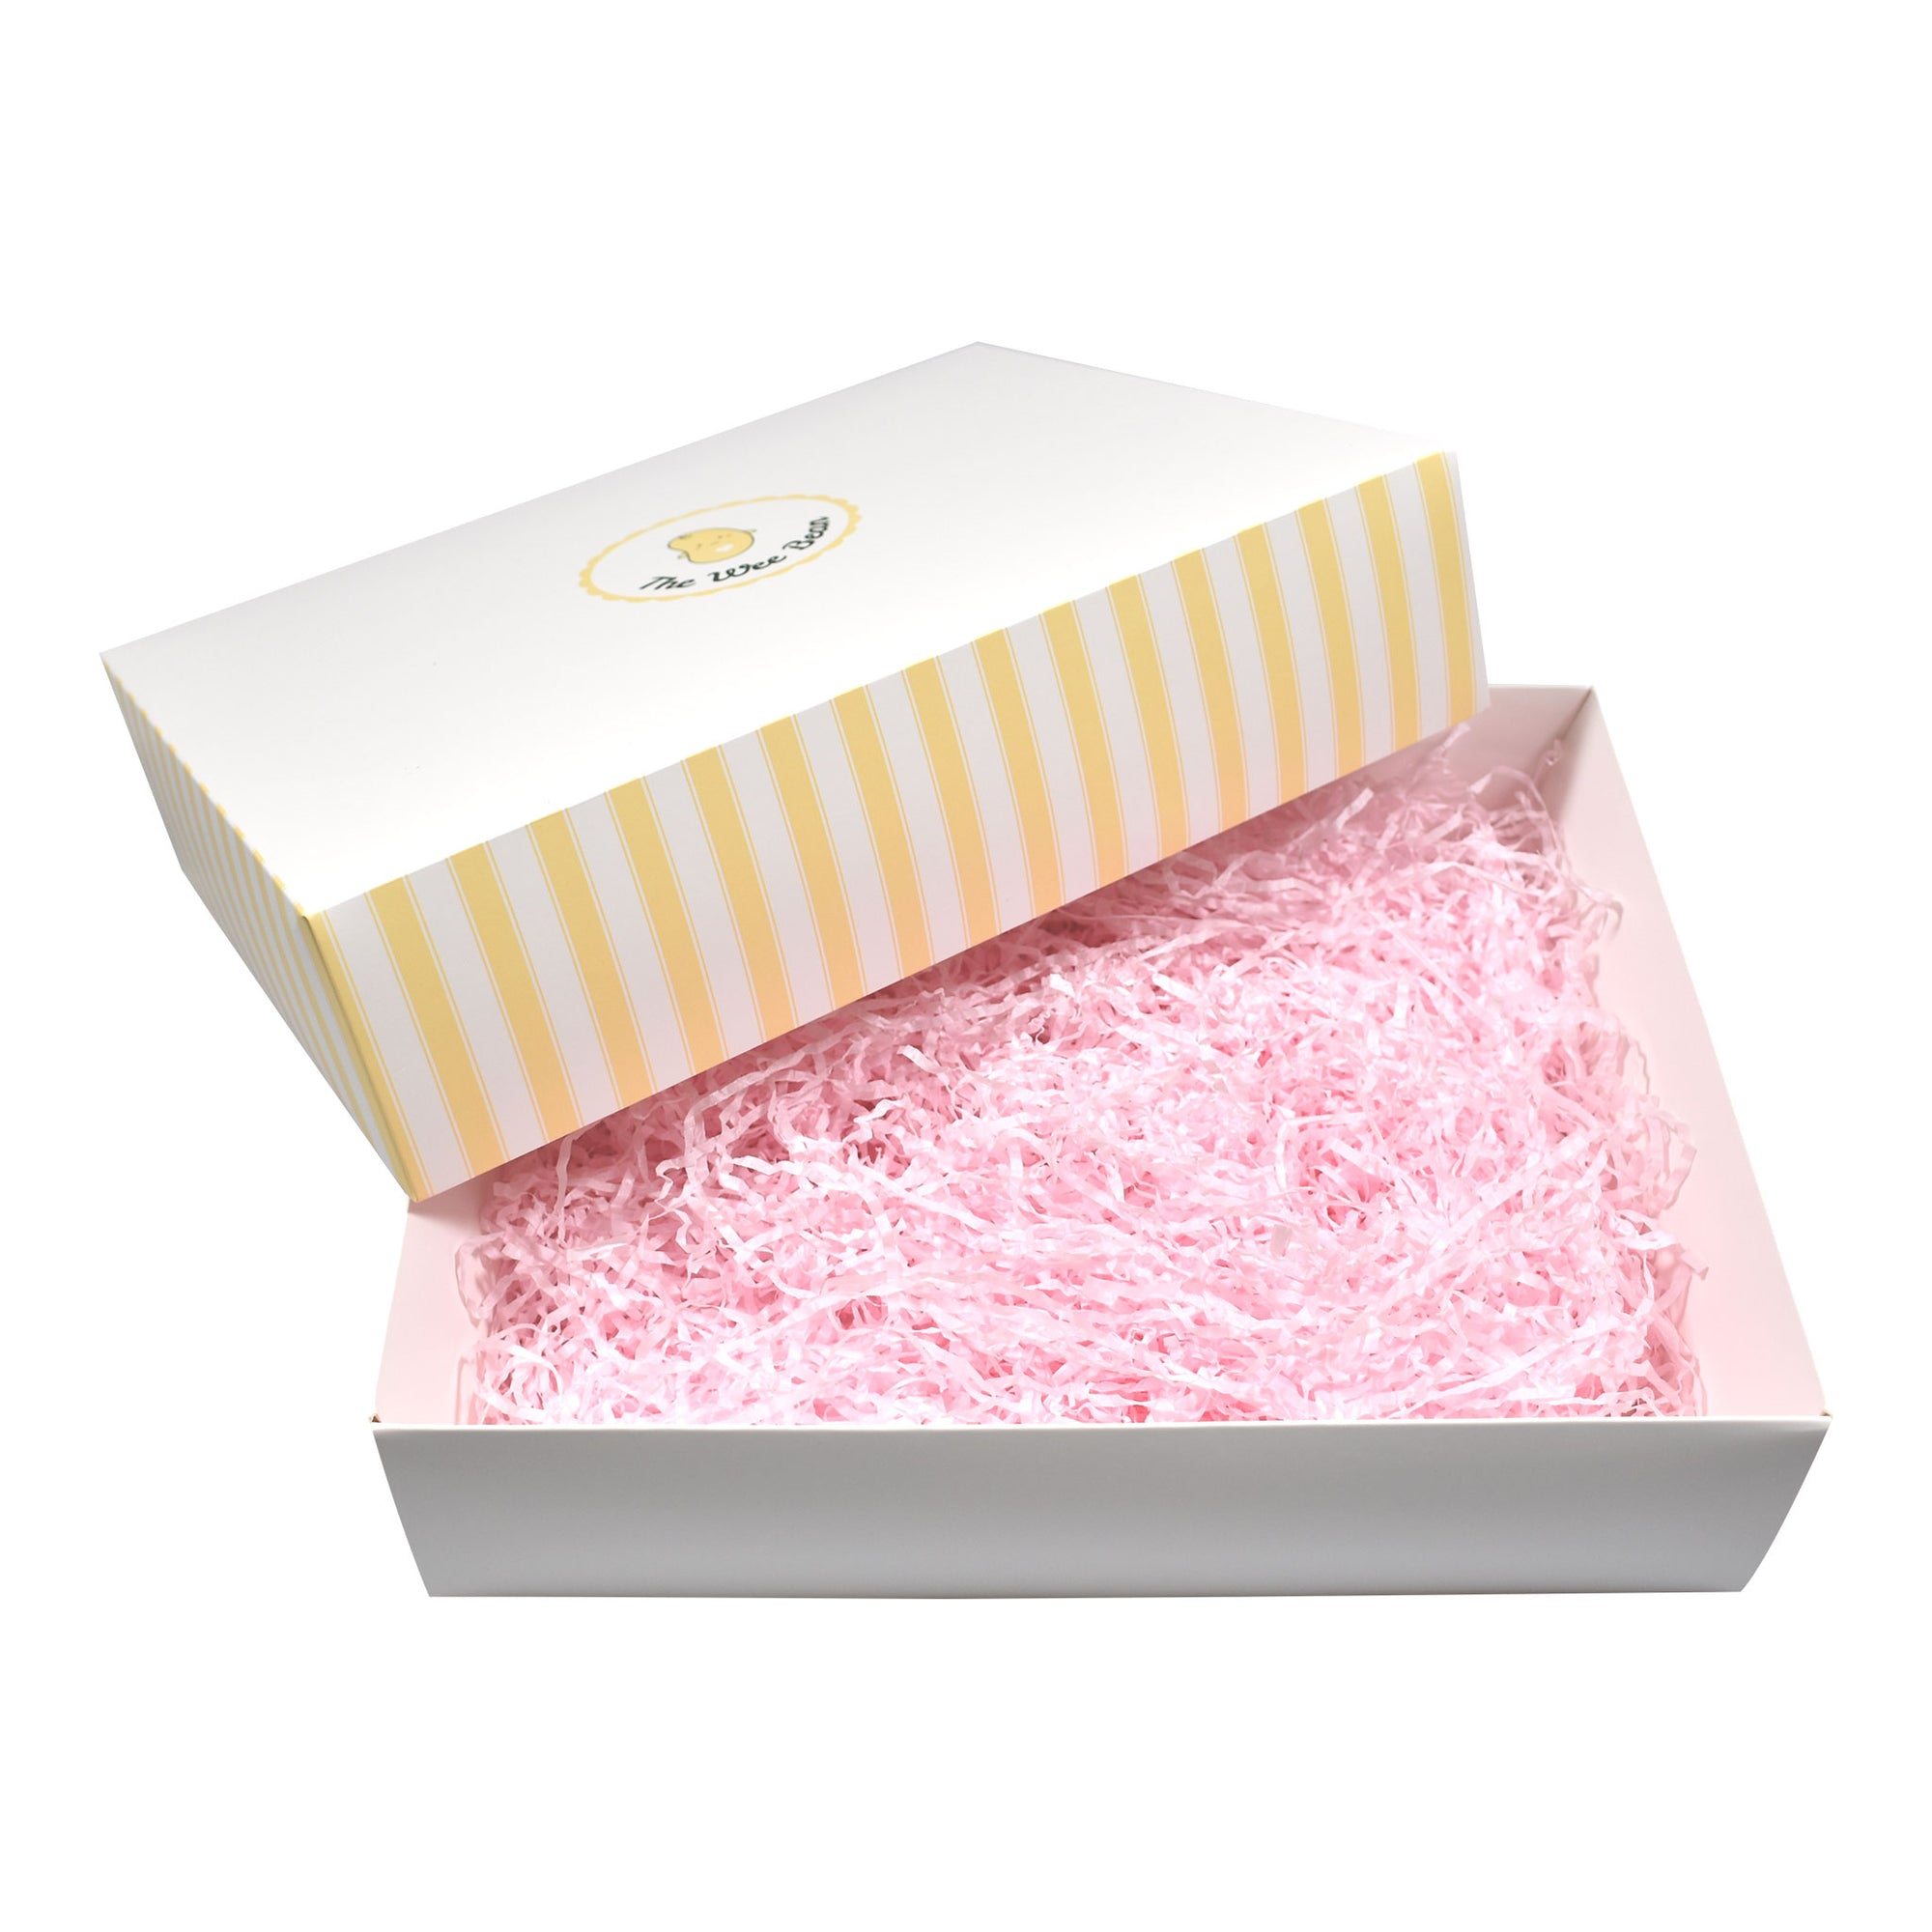 Add Gift Box Packaging  - HONG KONG ONLY